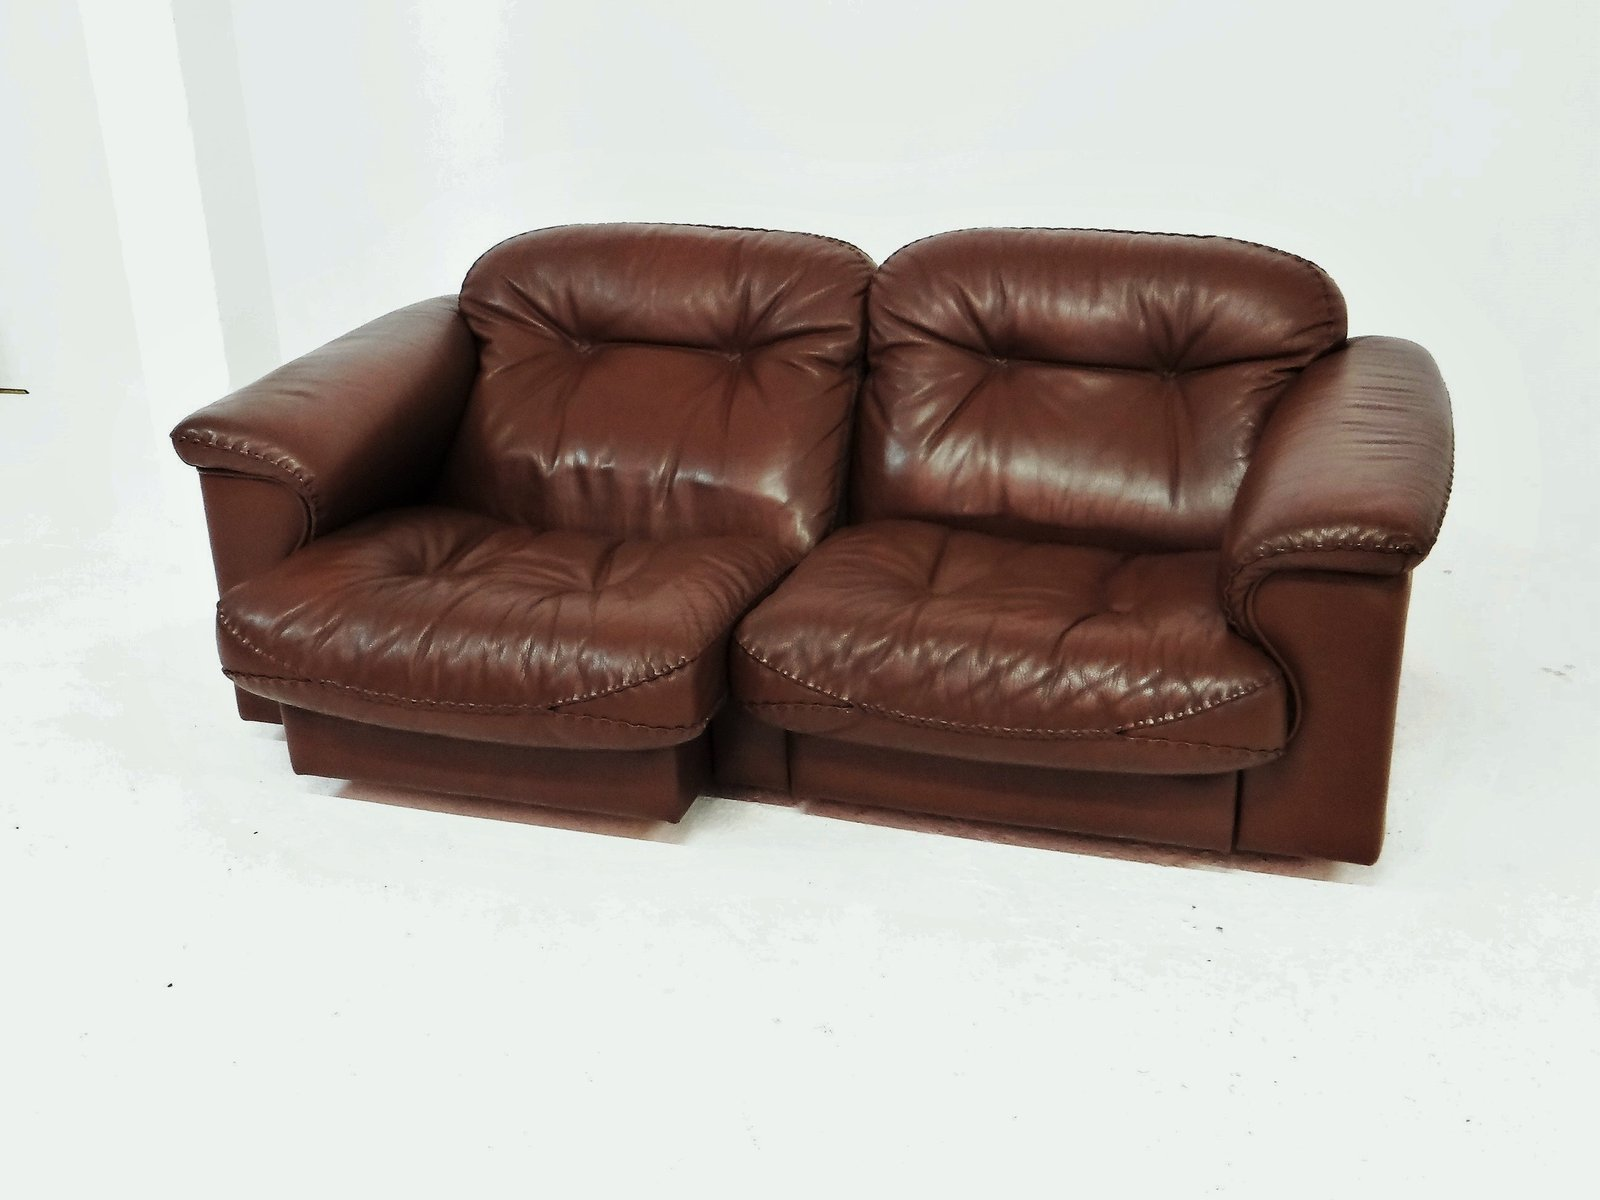 leather vintage craigslist sofa sale couch for